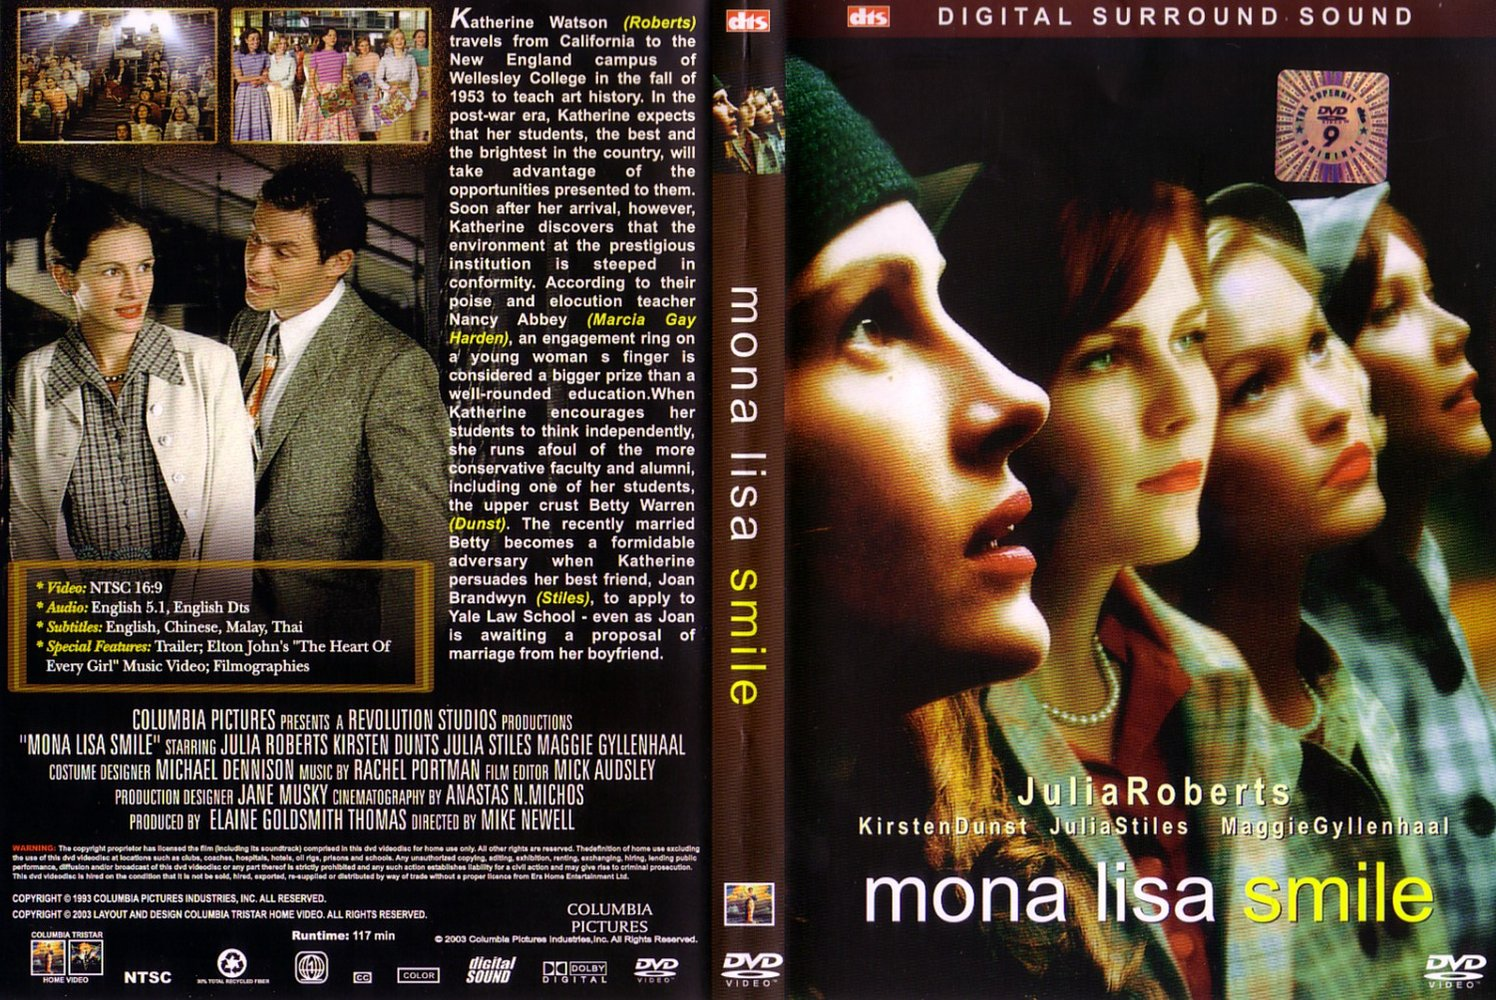 Mona Lisa Smile U S Guest Lecture Boston November 12th The Grand Narrative